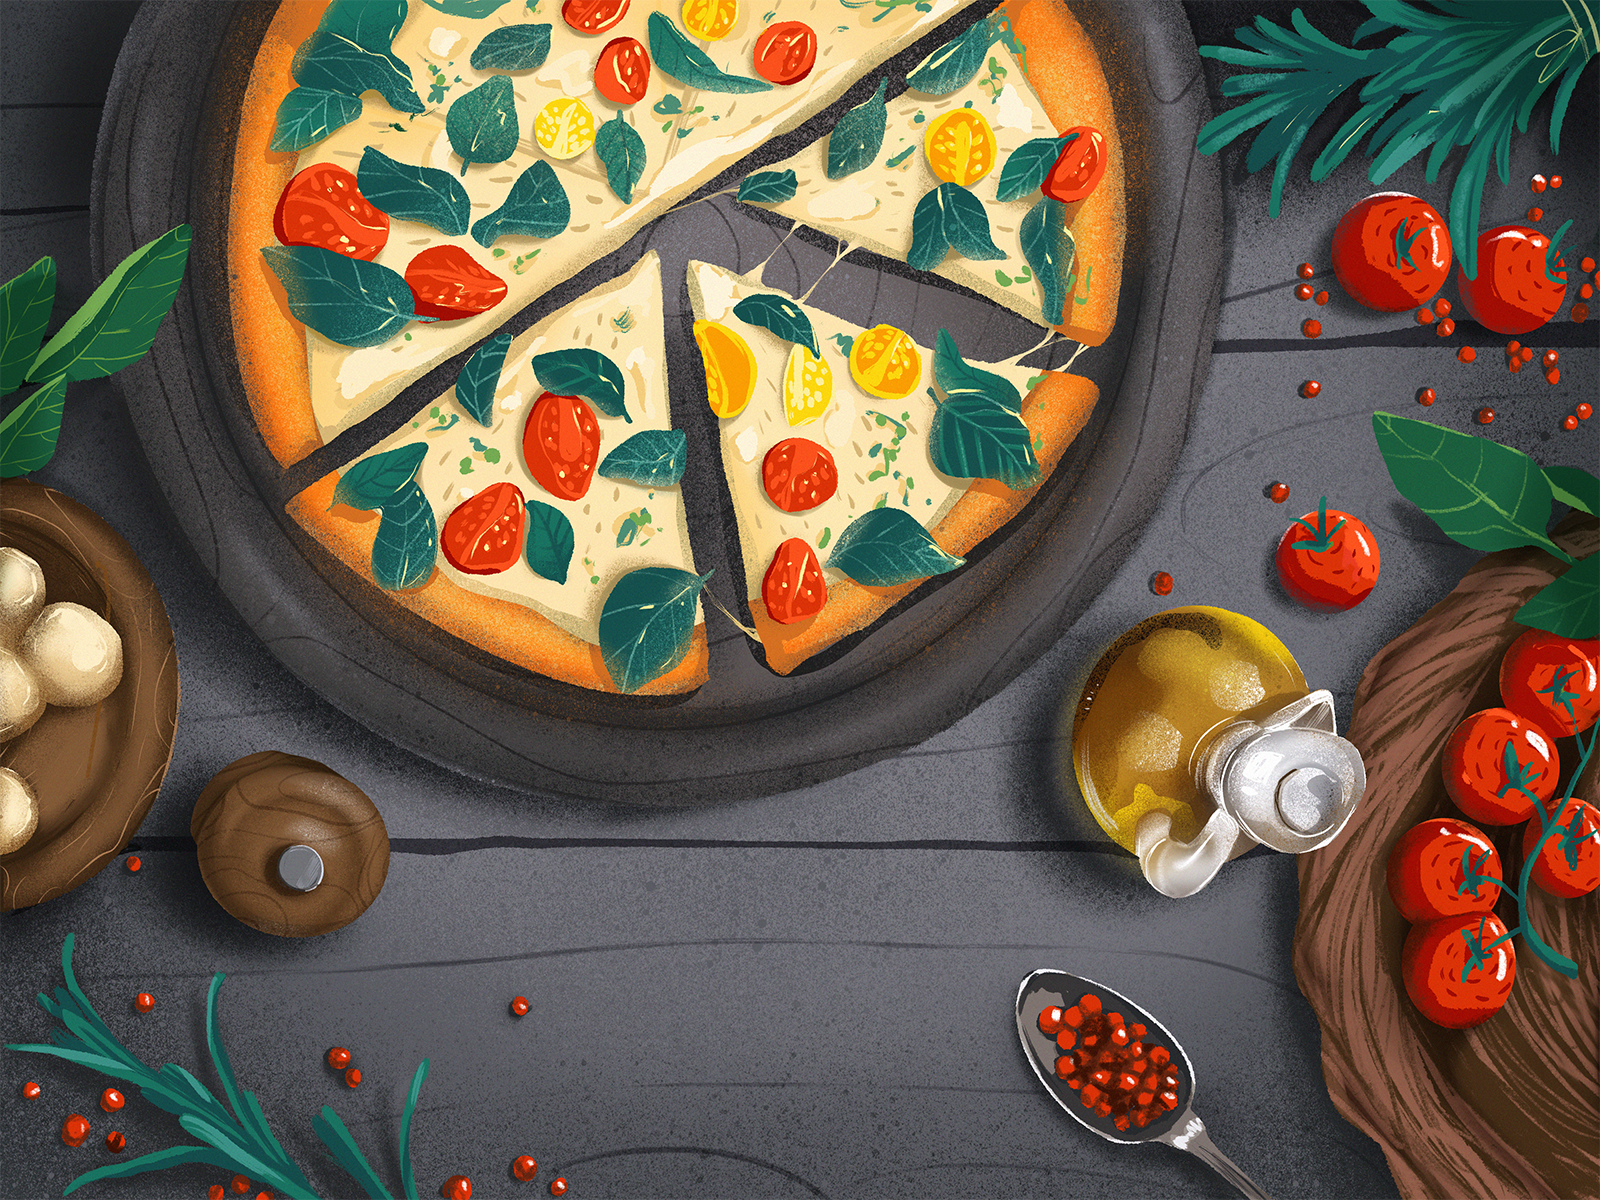 Italian food illustration